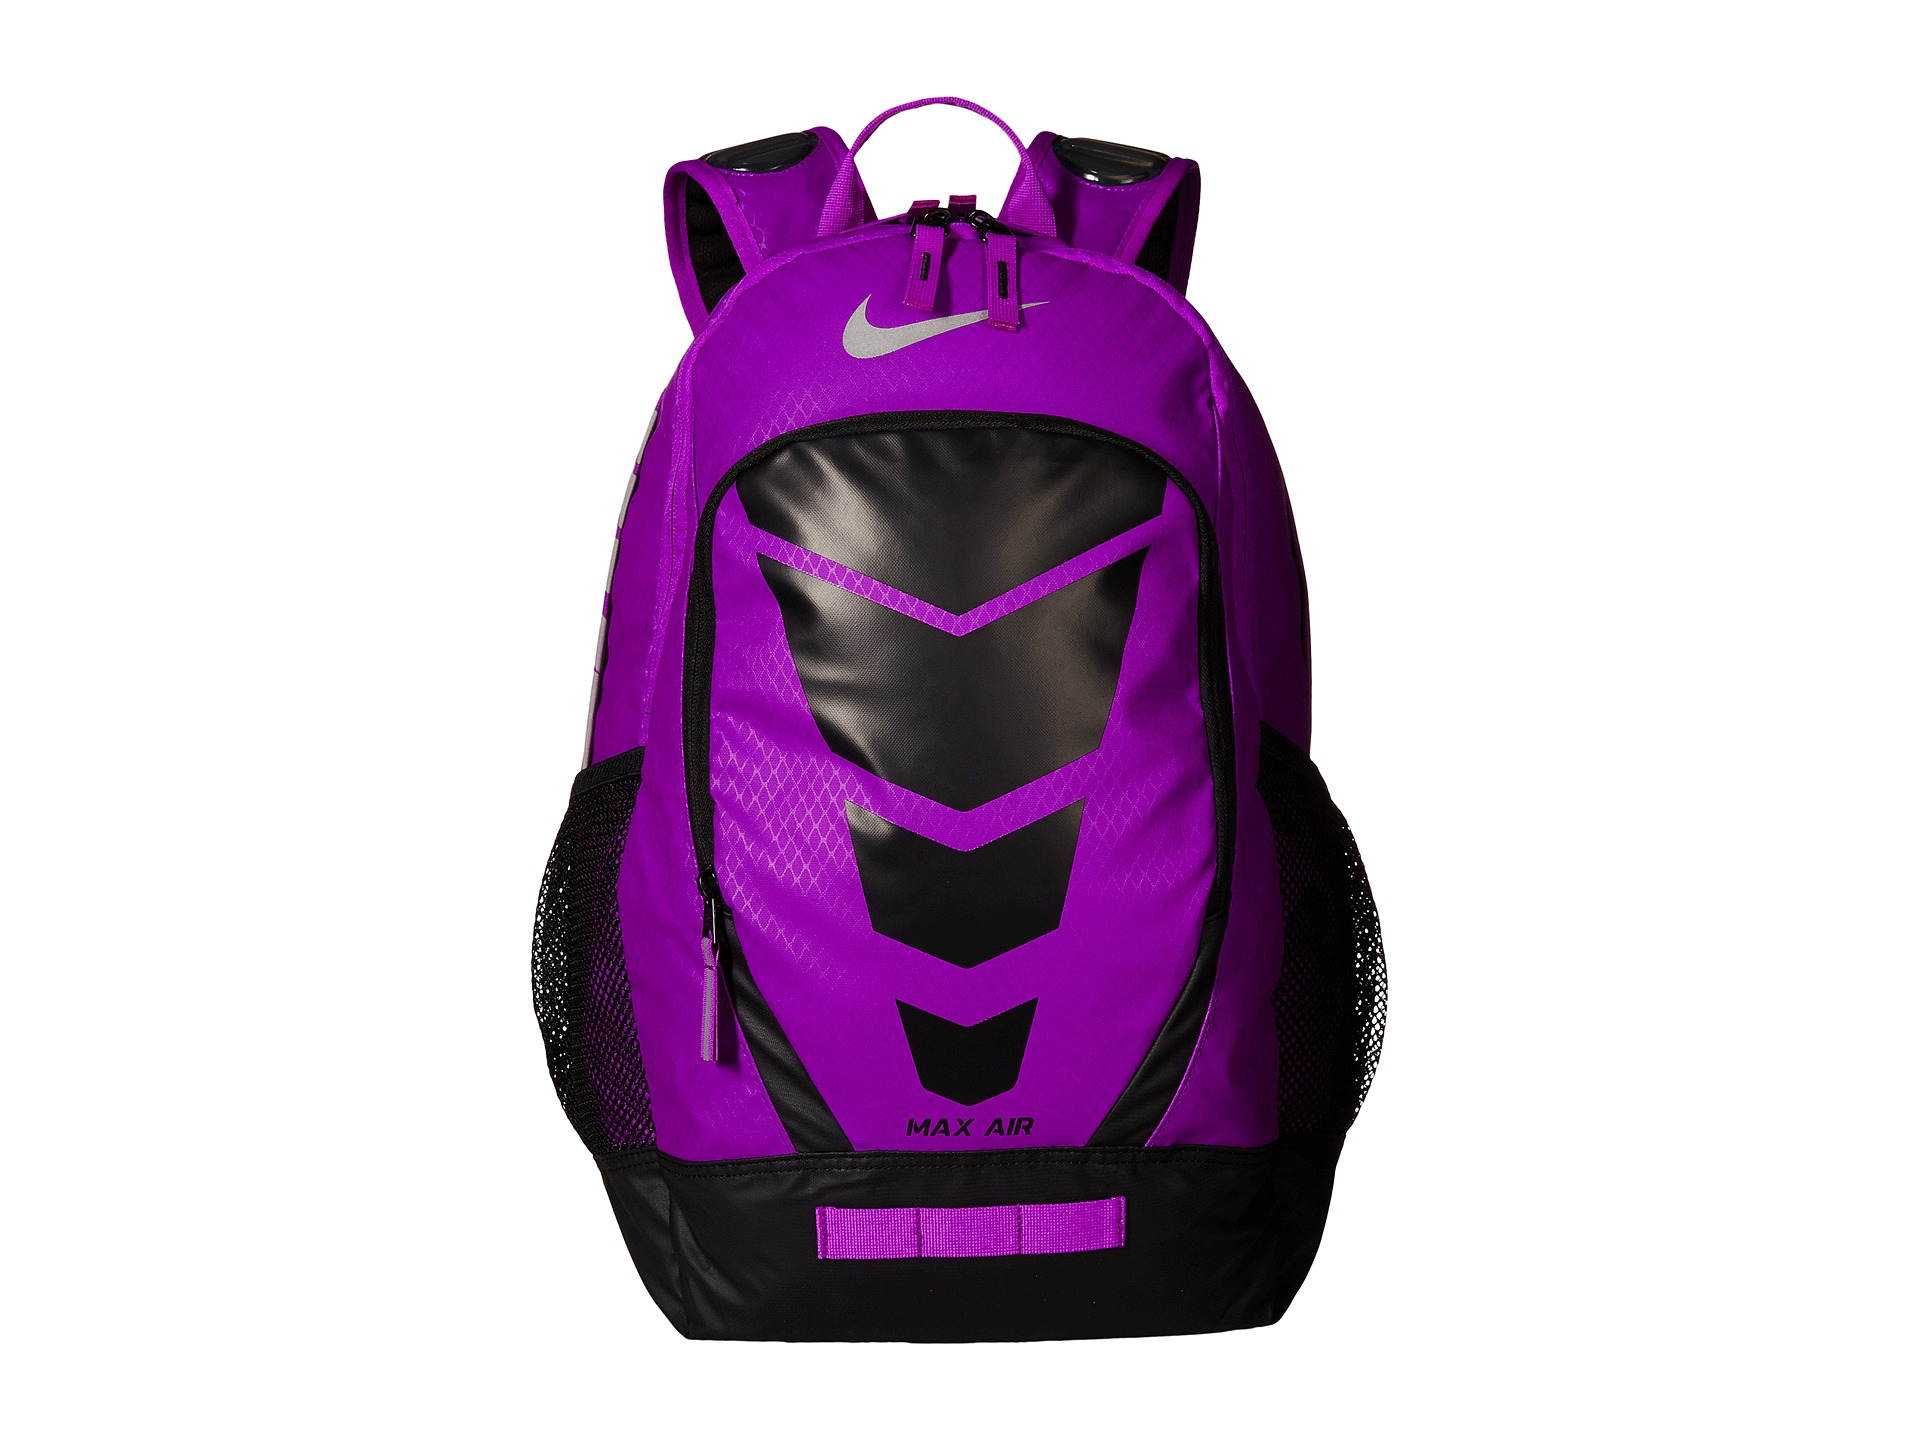 3deb3938976c Lyst - Nike Max Air Vapor Backpack in Purple